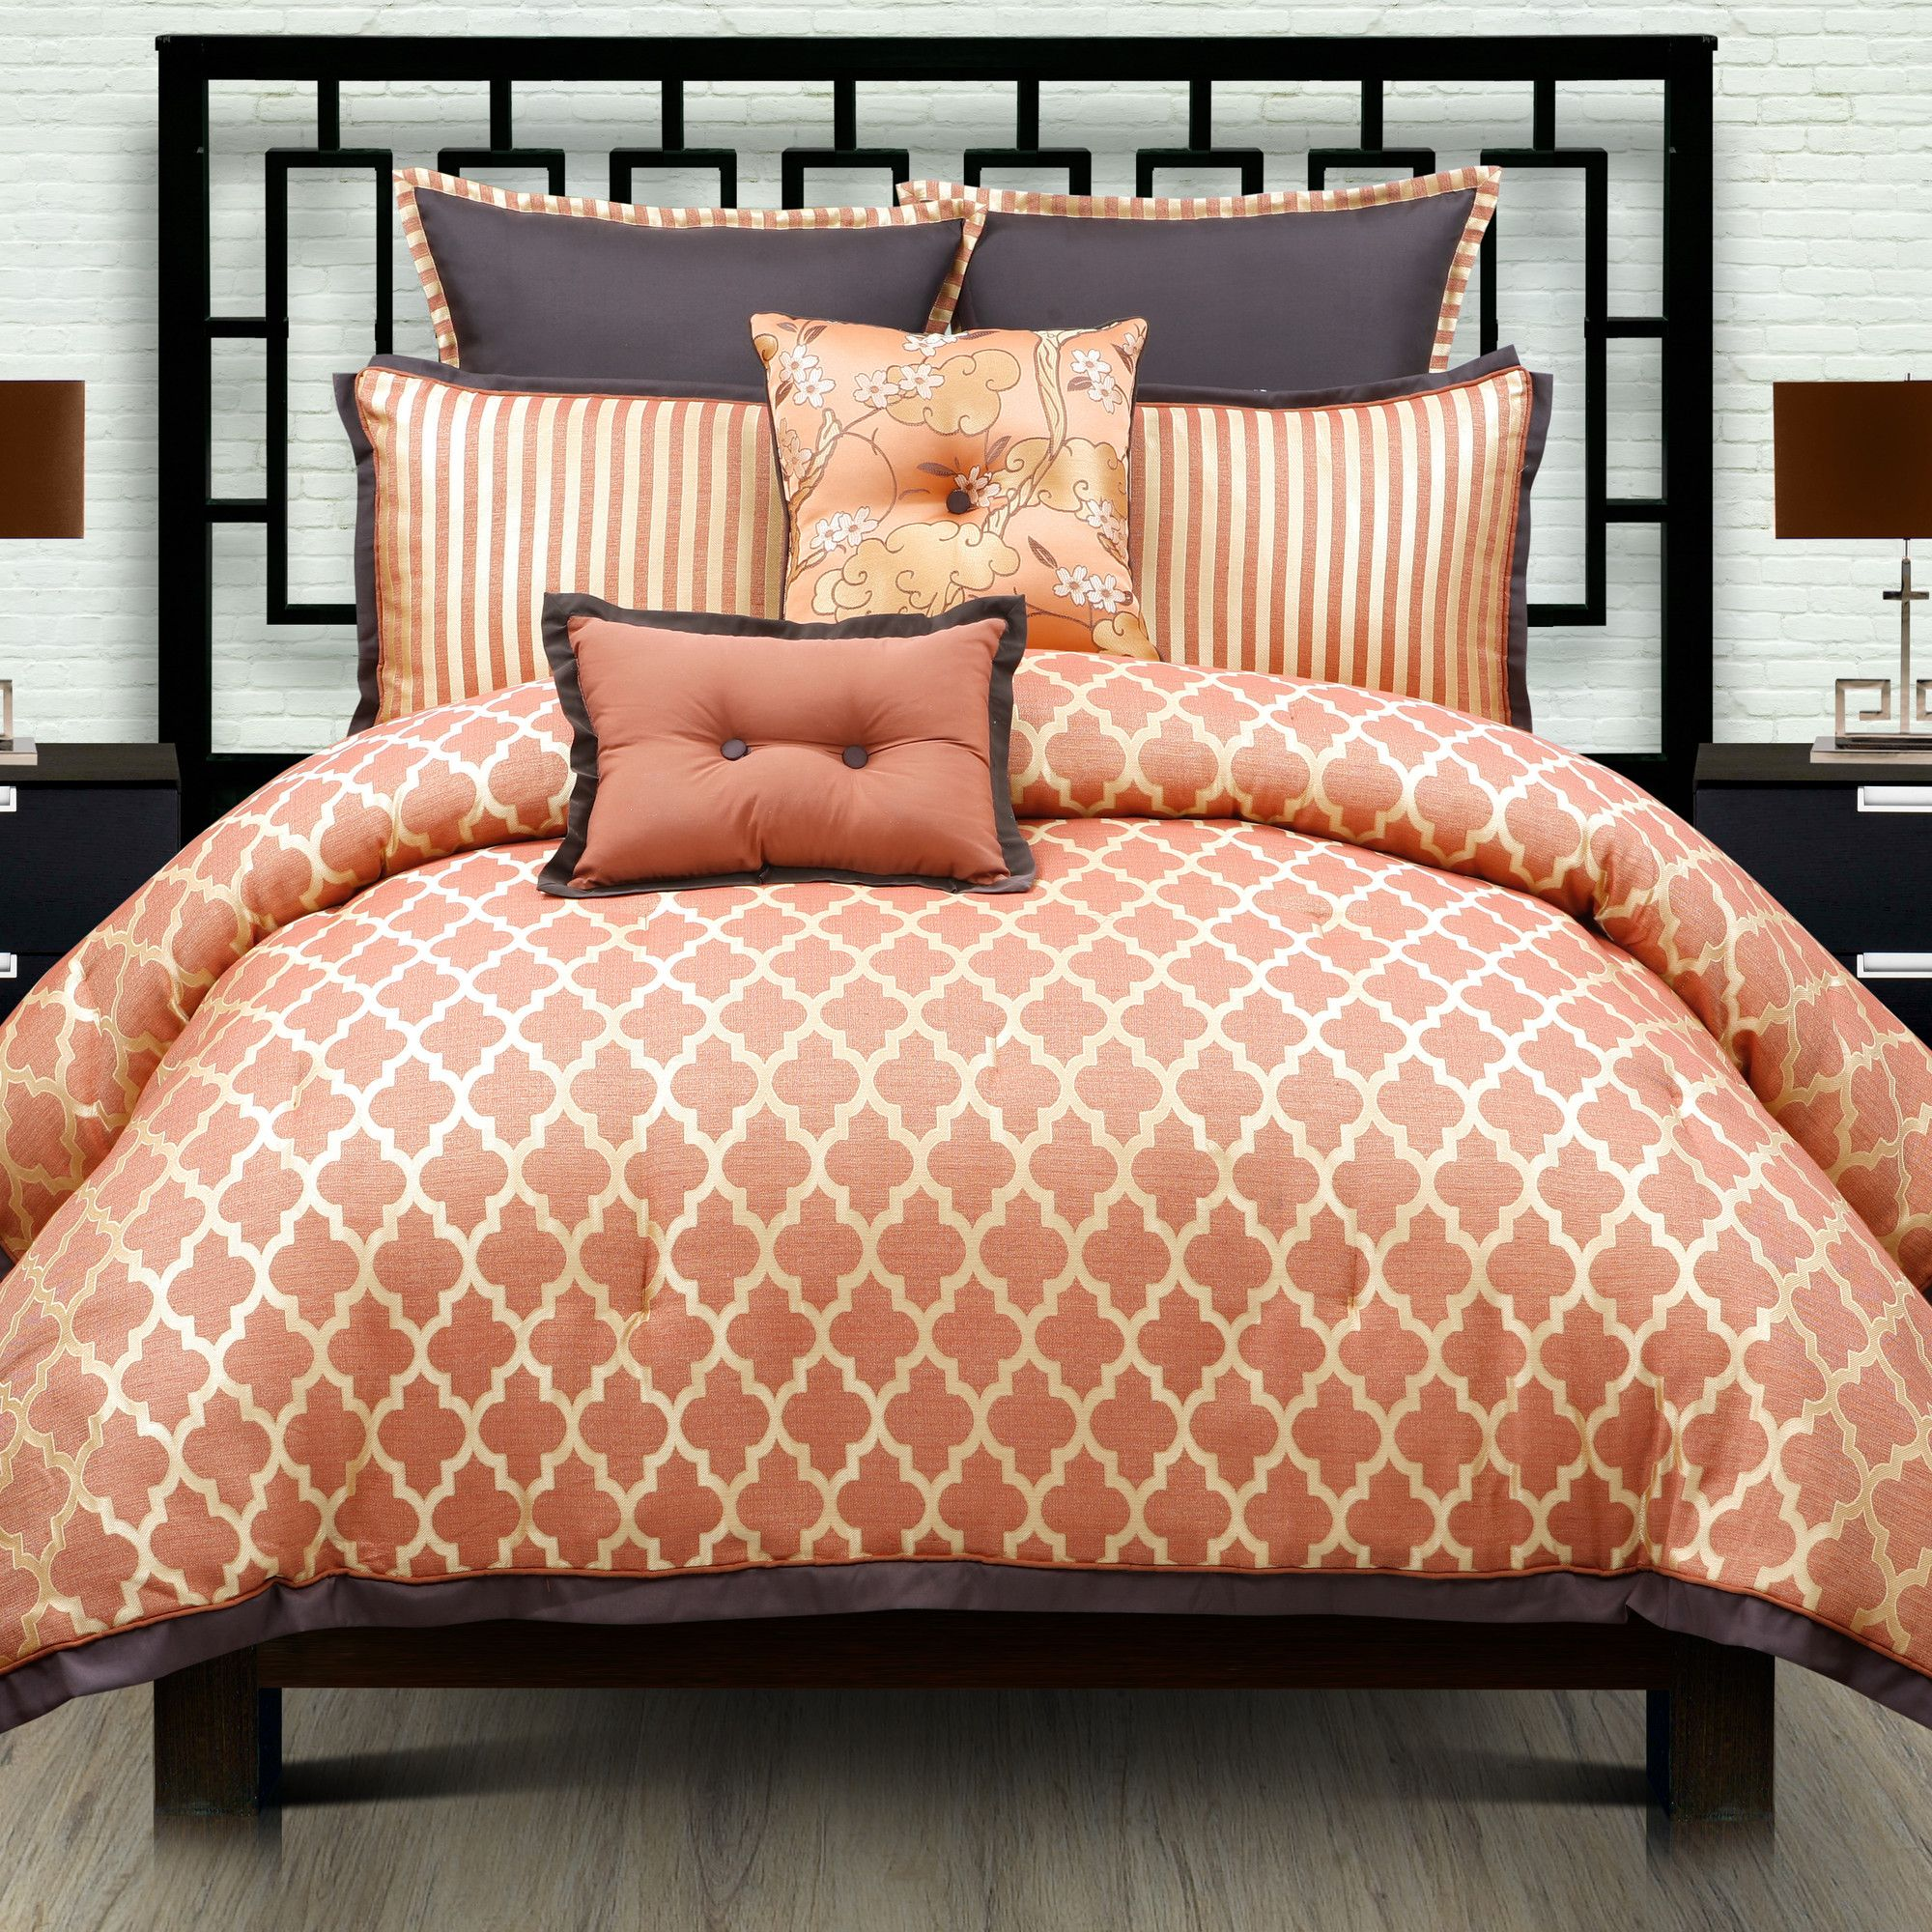 decoration orange latest for bed comforters queen comforter king camo set